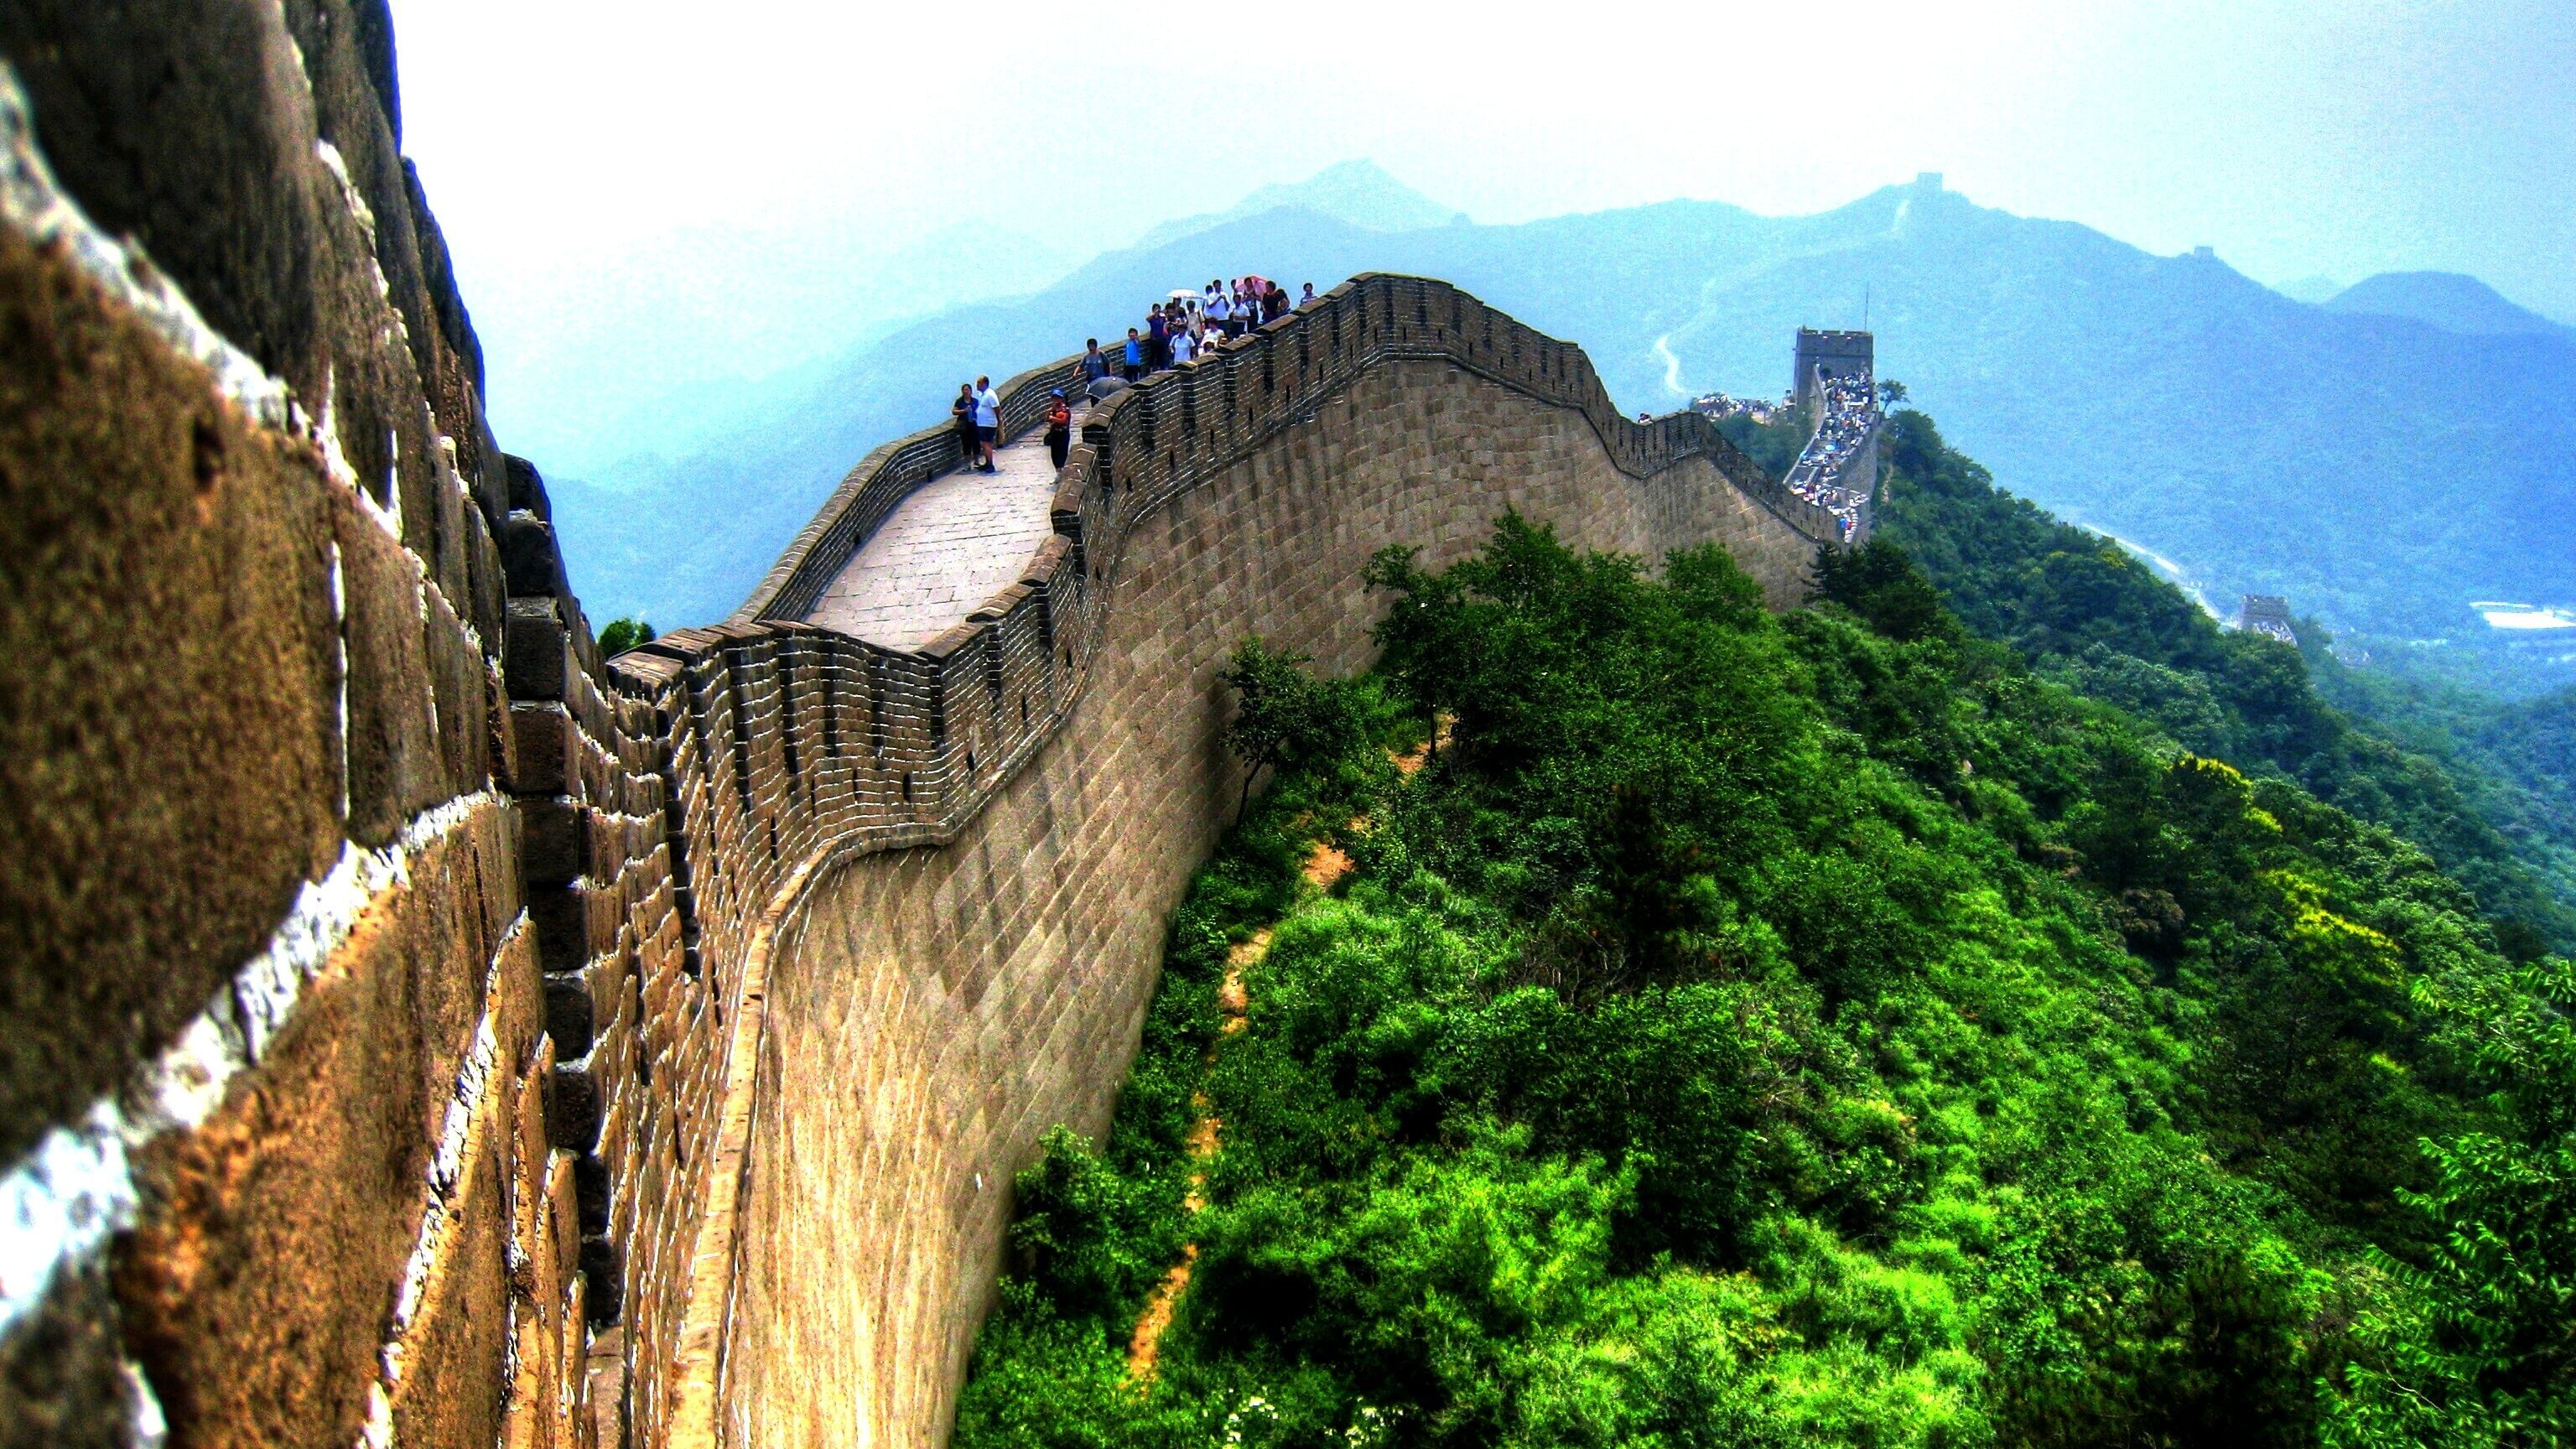 The Great Wall of China Wallpaper 51 images 3072x1728